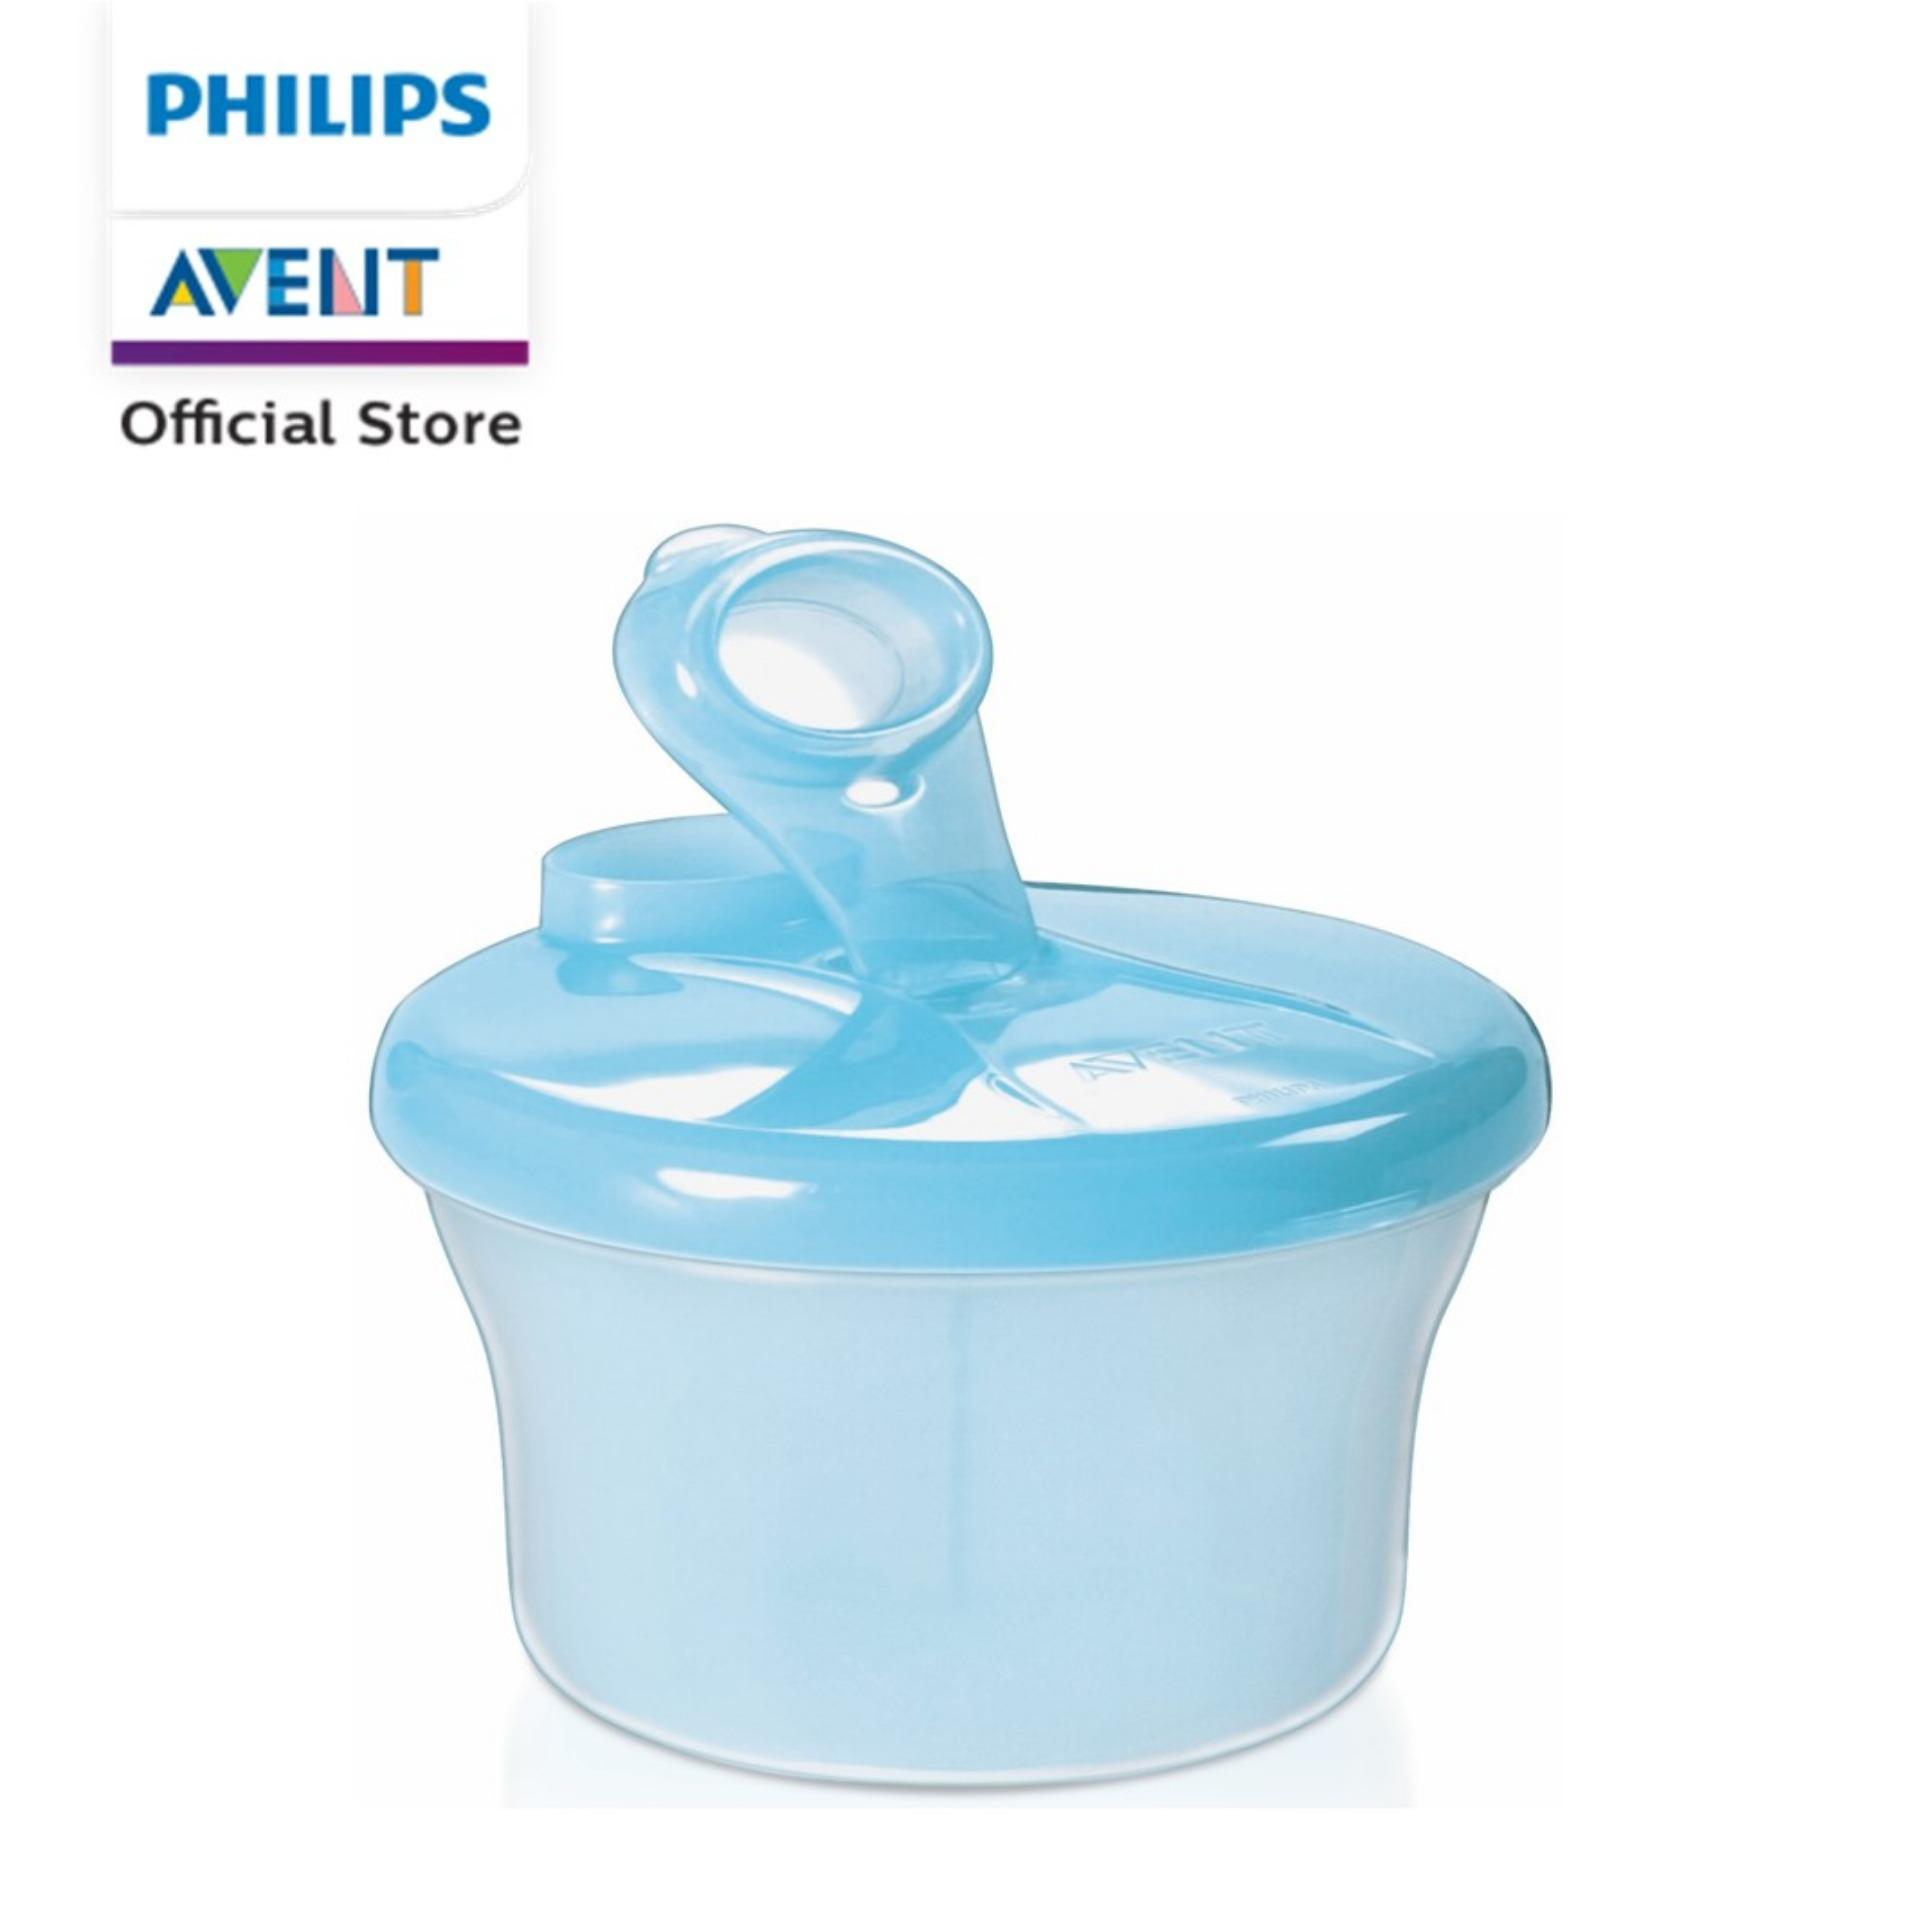 Philips Avent Milk Powder Dispenser By Philips Avent Official Store.